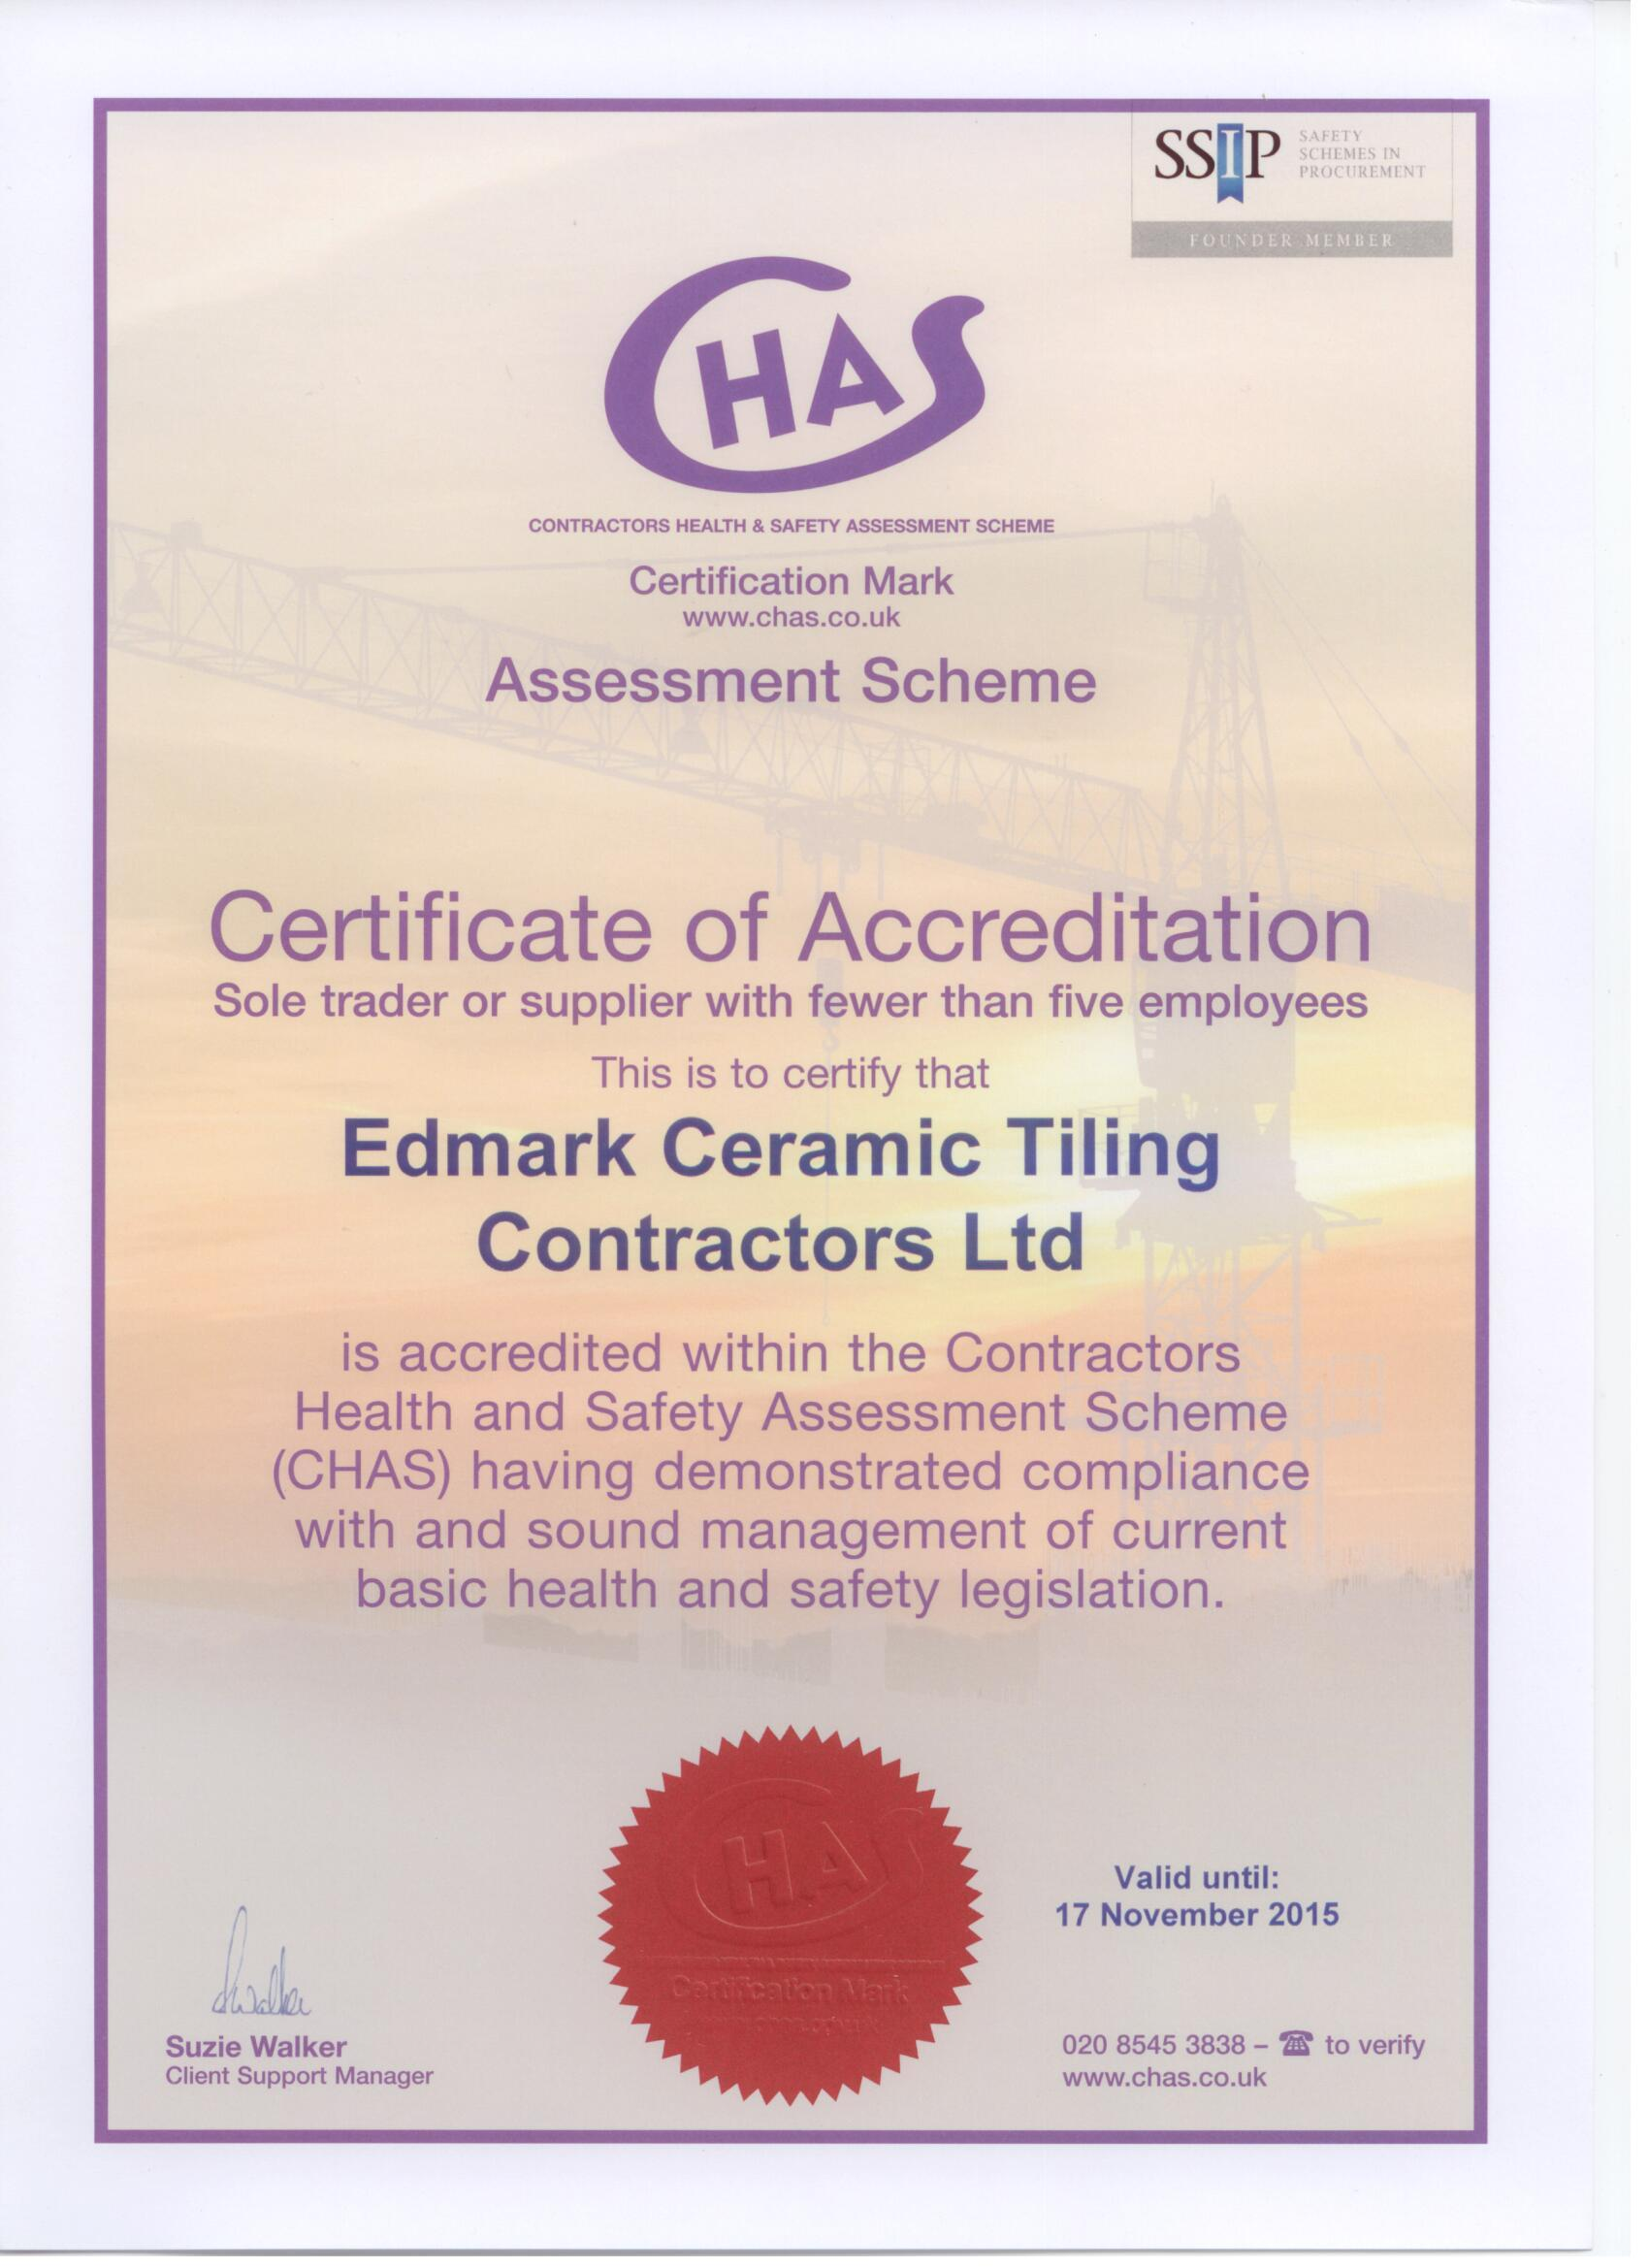 CHAS certificate 2014 001